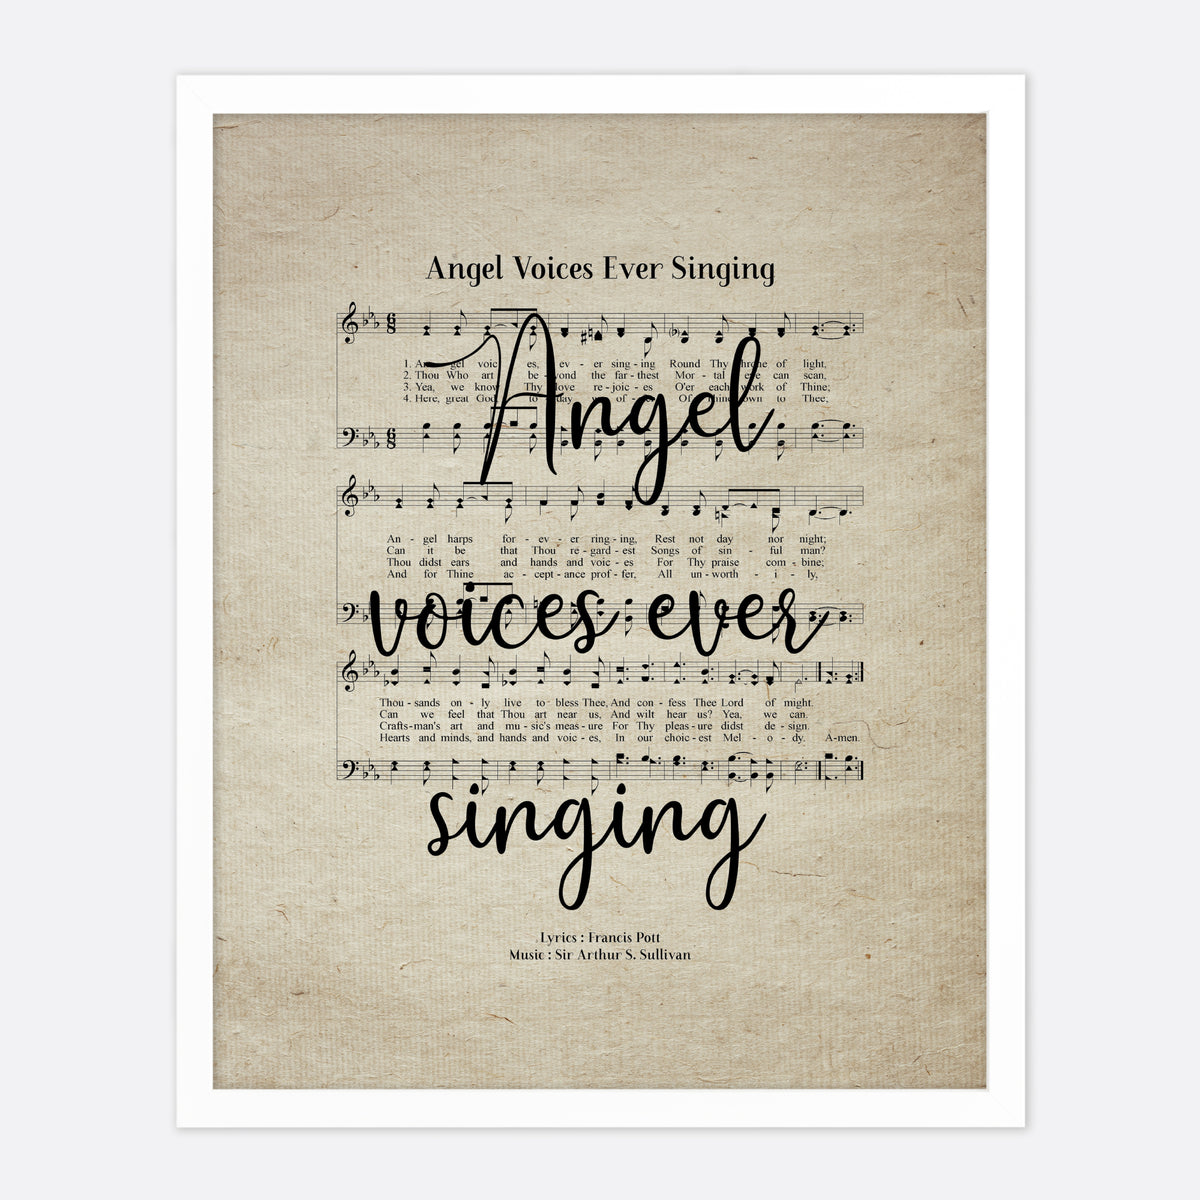 Angel Voices Ever Singing